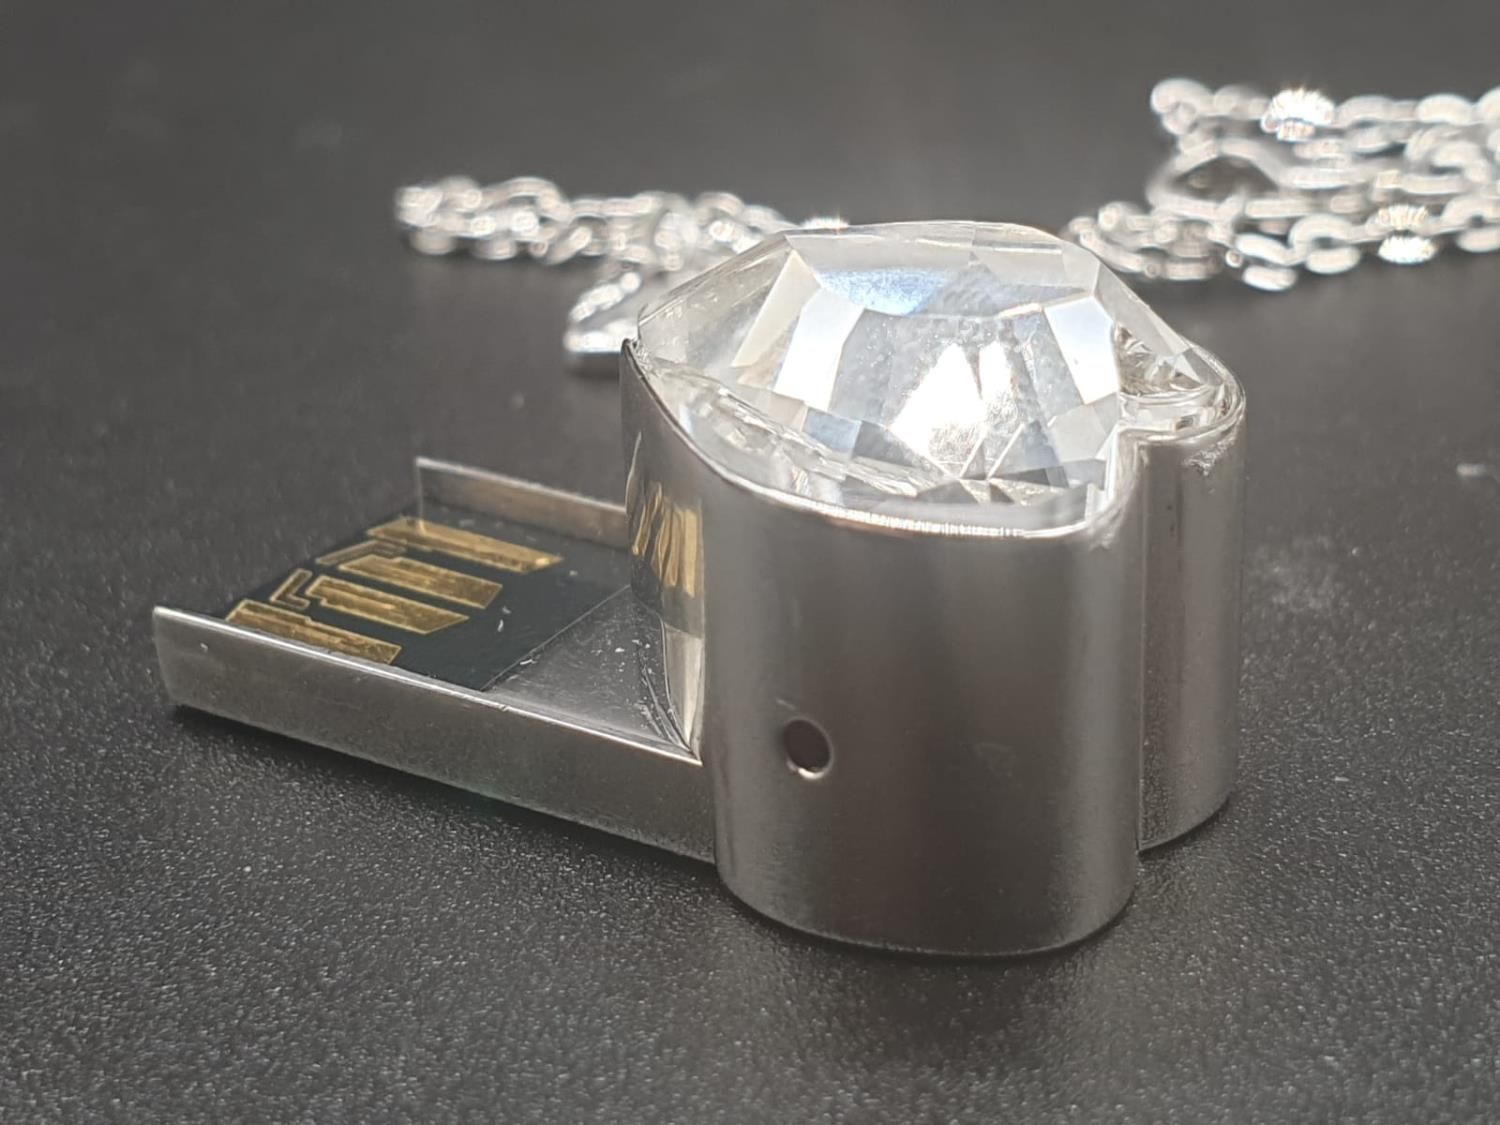 Swarovski Women's Metallic Active Crystal Heart-Shaped Pendant with built-in 8GB USB. 76cm As new, - Image 7 of 10